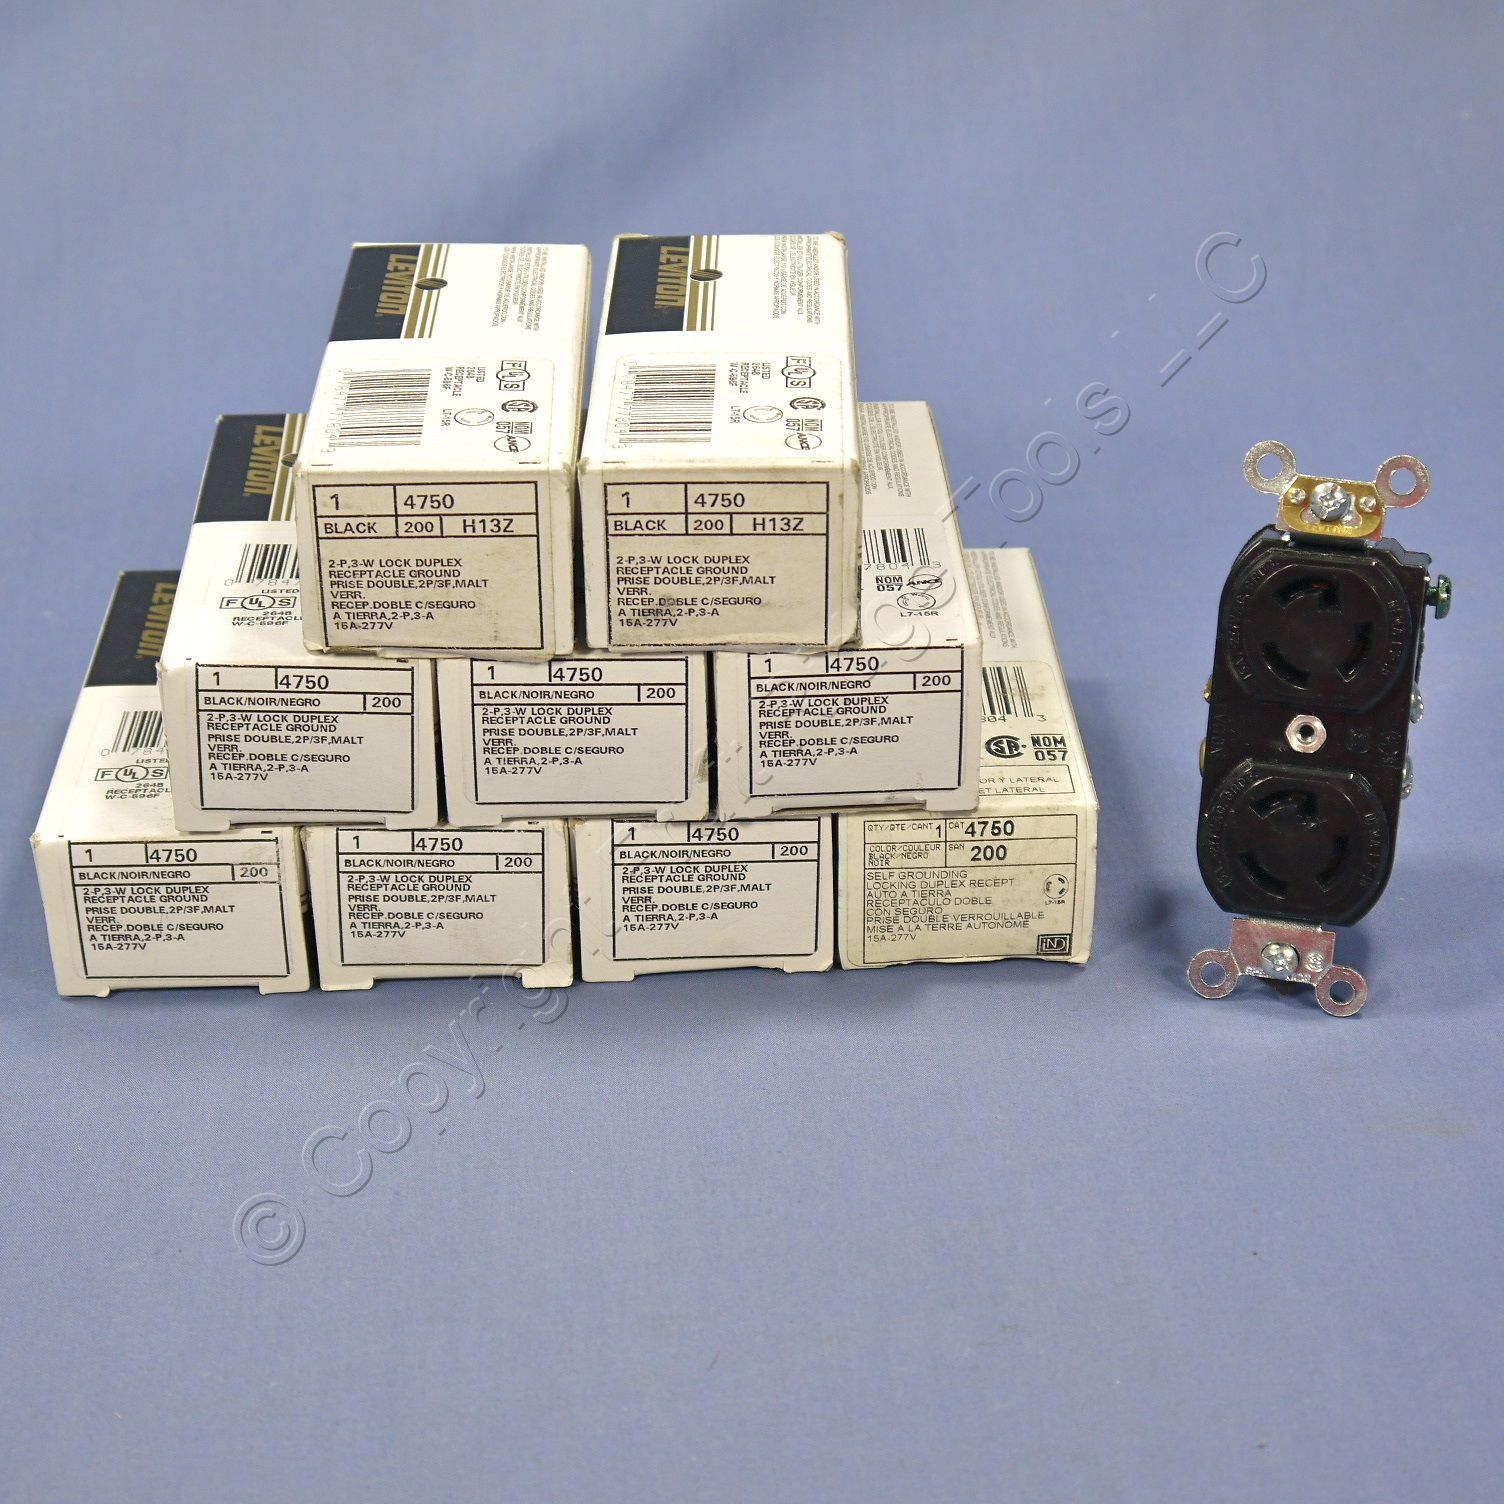 10 leviton l7 15 locking receptacles nema l7 15r duplex outlet 15a 277v 4750 ebay